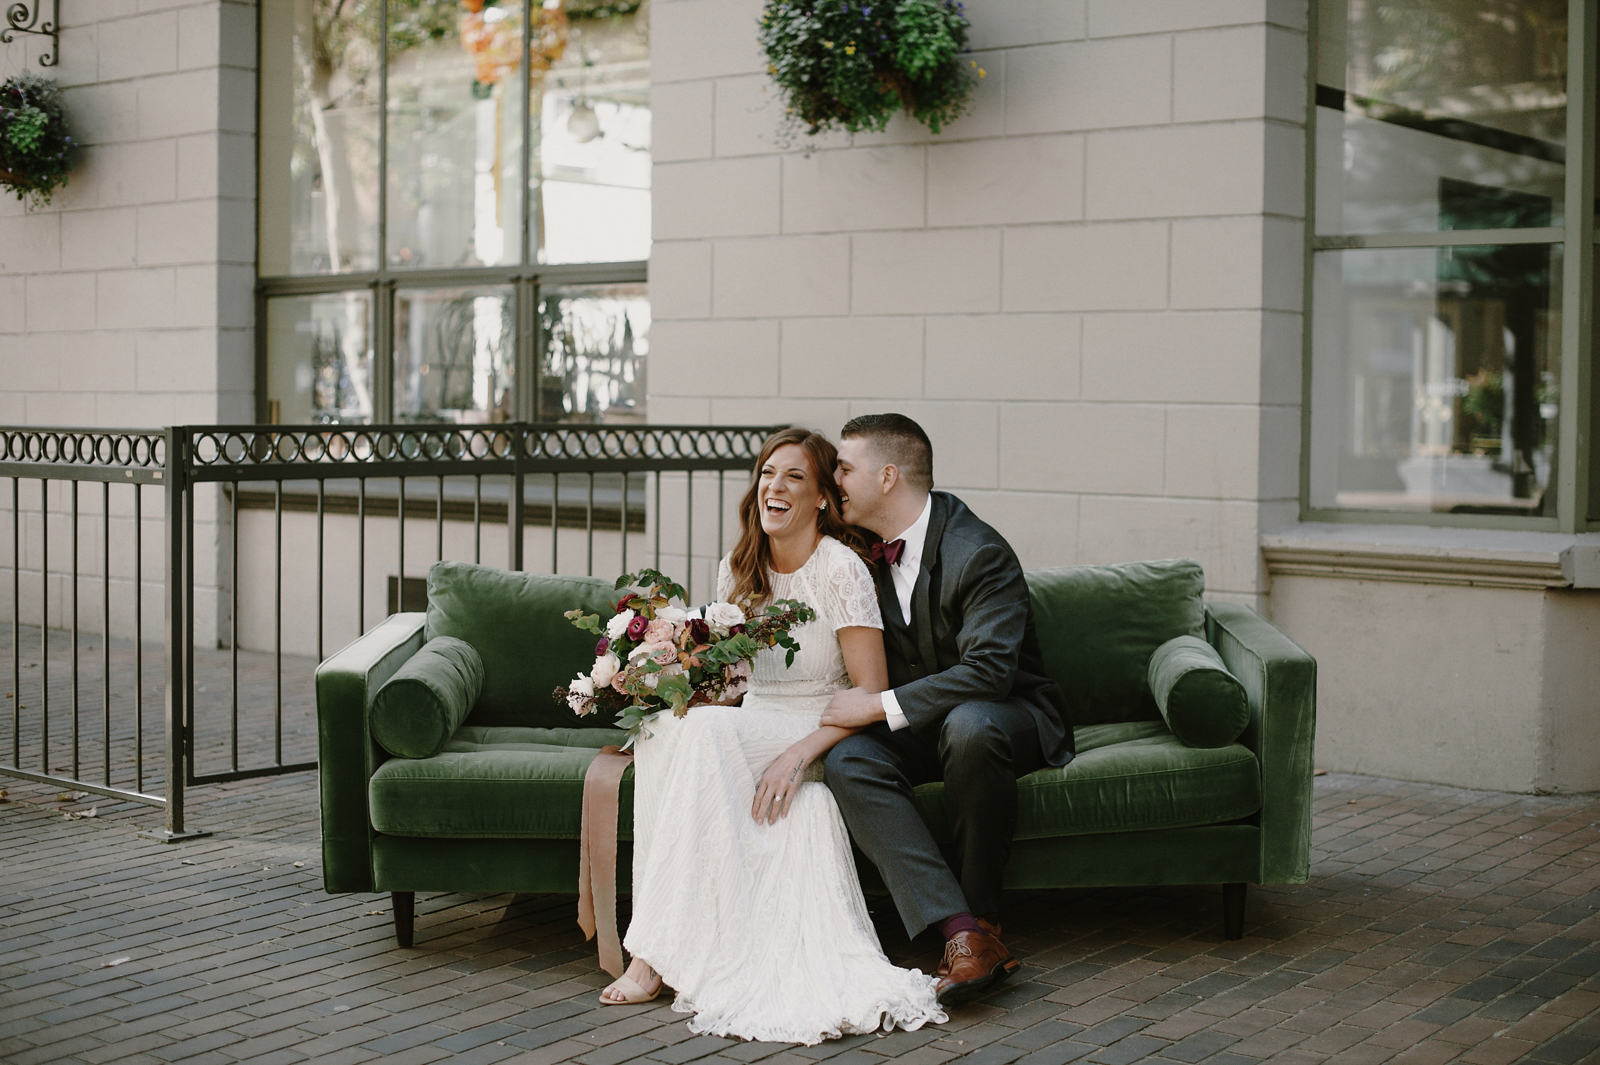 Downtown_Seattle_Wedding_Foundry_Sinclair_Moore025.JPG